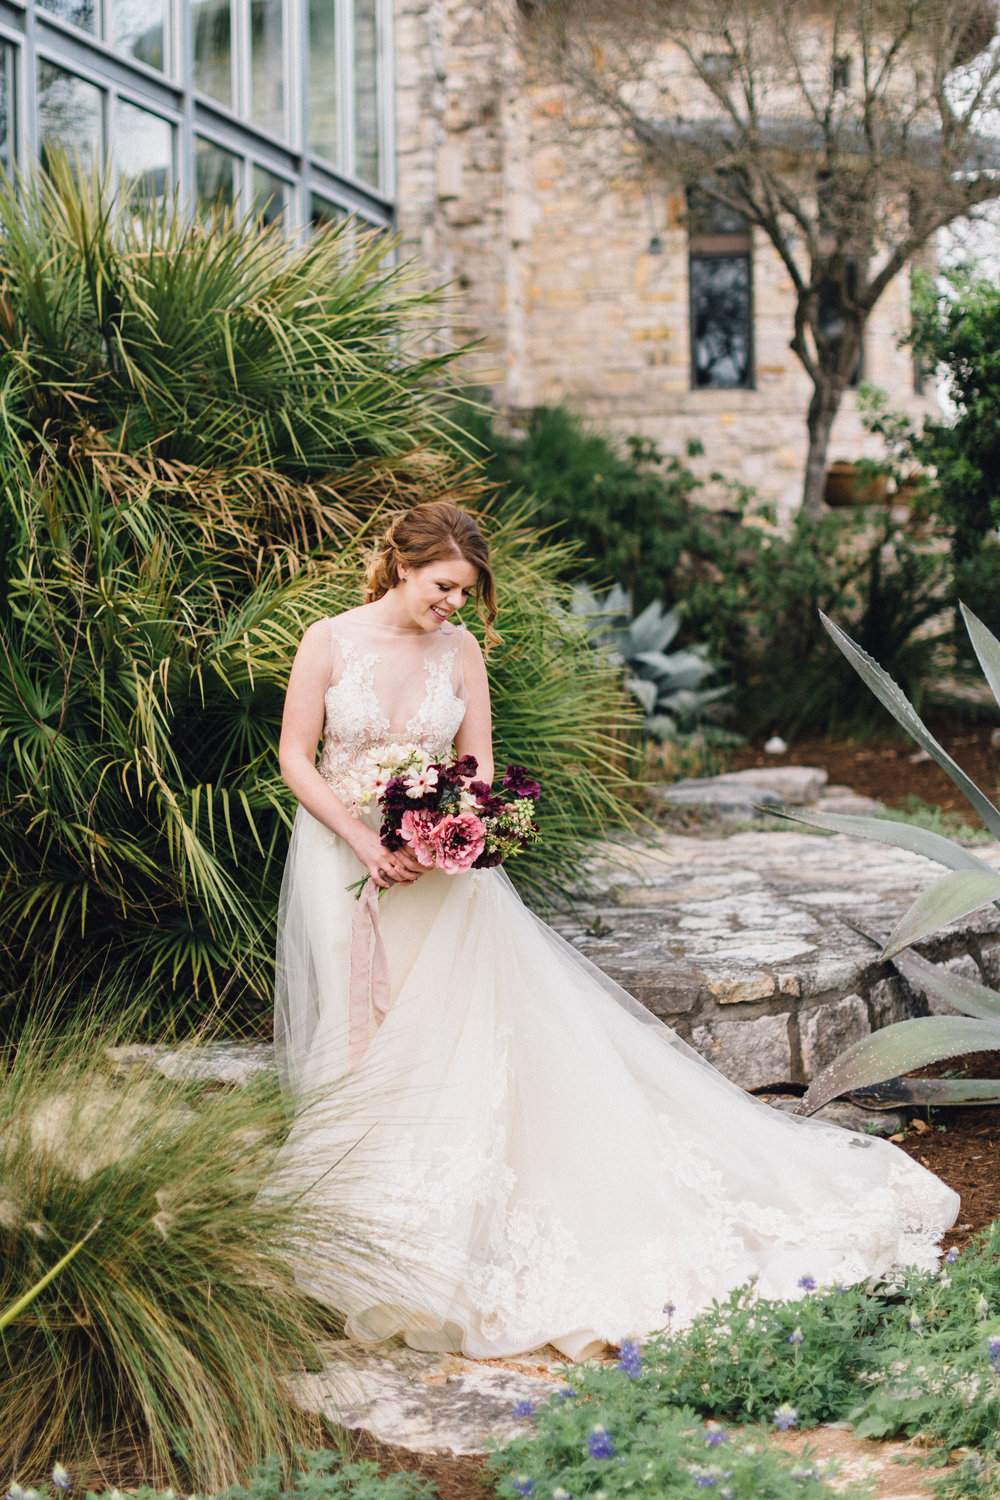 Rose_Bridals_Feather_&_Twine-33.jpg